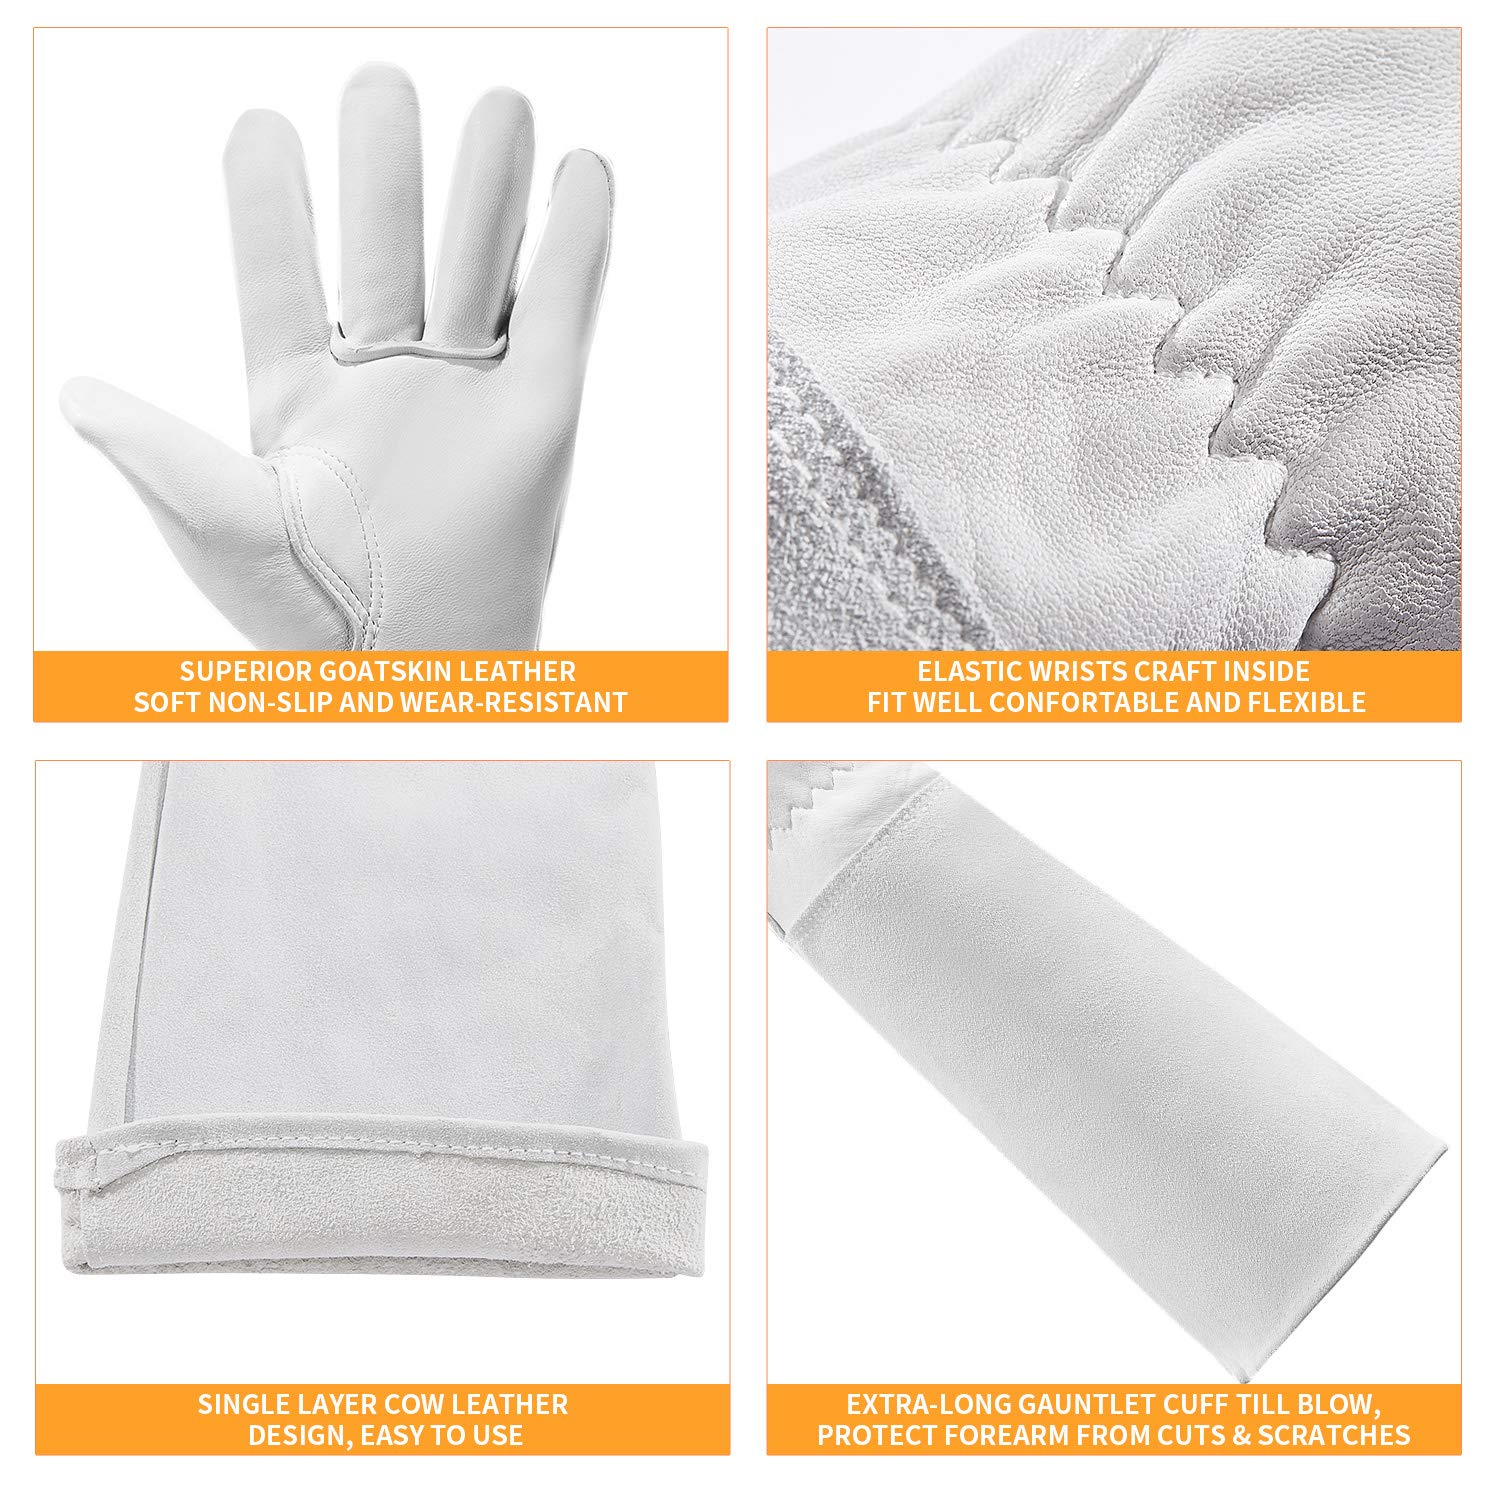 Thorn Proof Goatskin Leather Gardening Gloves with Long Cowhide Gauntlet to Protect Your Arms Until Elbow S Long Rose Pruning Gloves for Men and Women